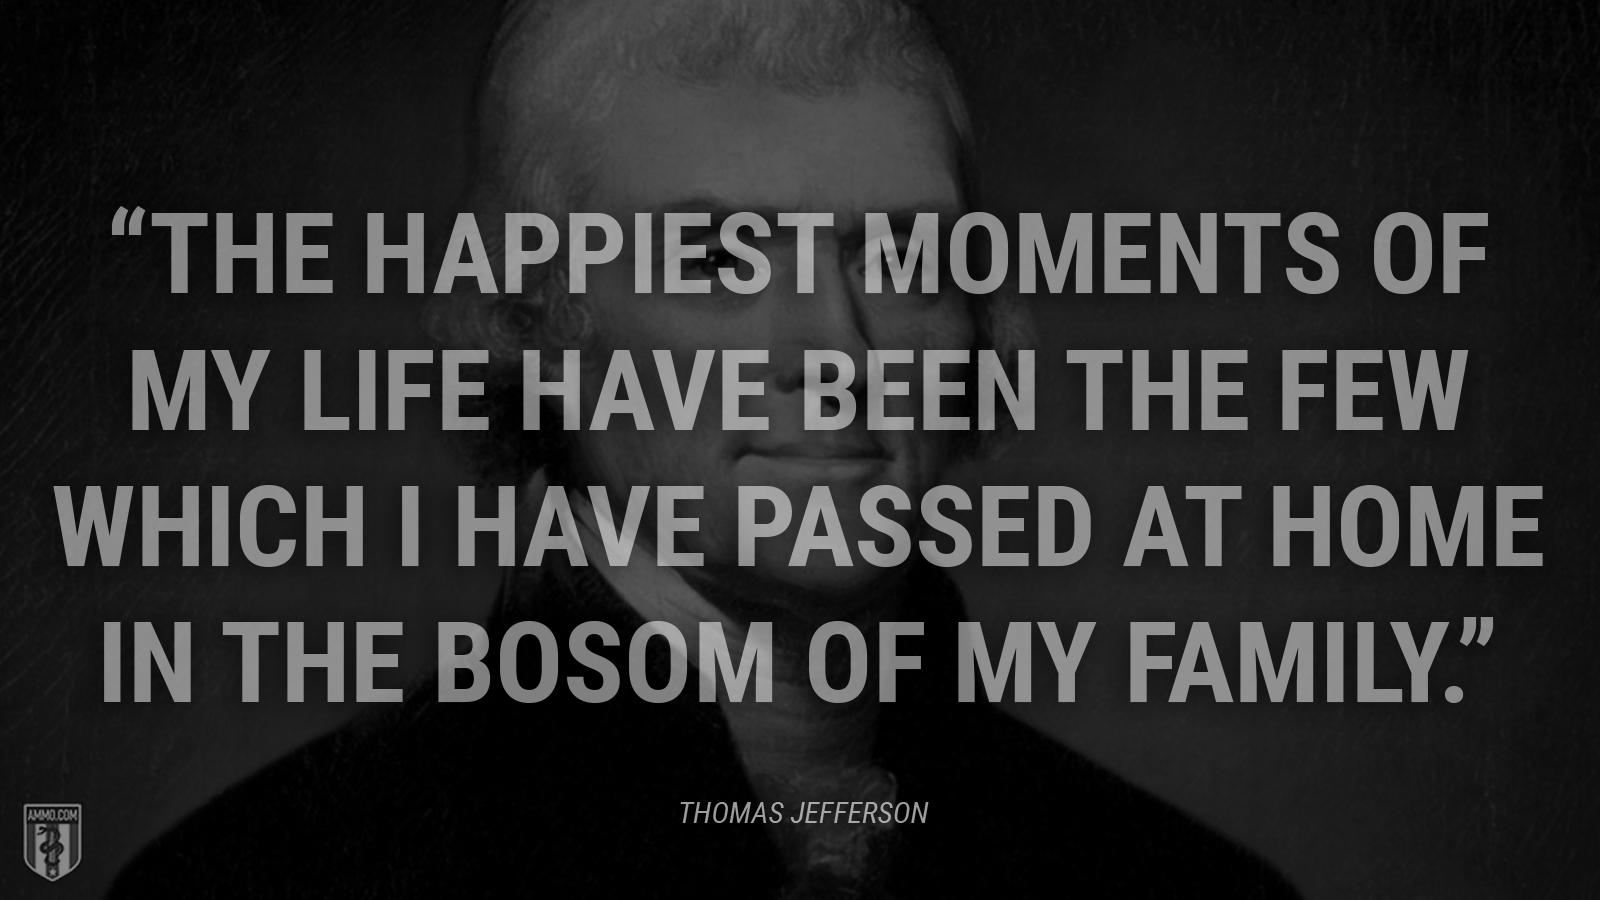 """The happiest moments of my life have been the few which I have passed at home in the bosom of my family."" - Thomas Jefferson"